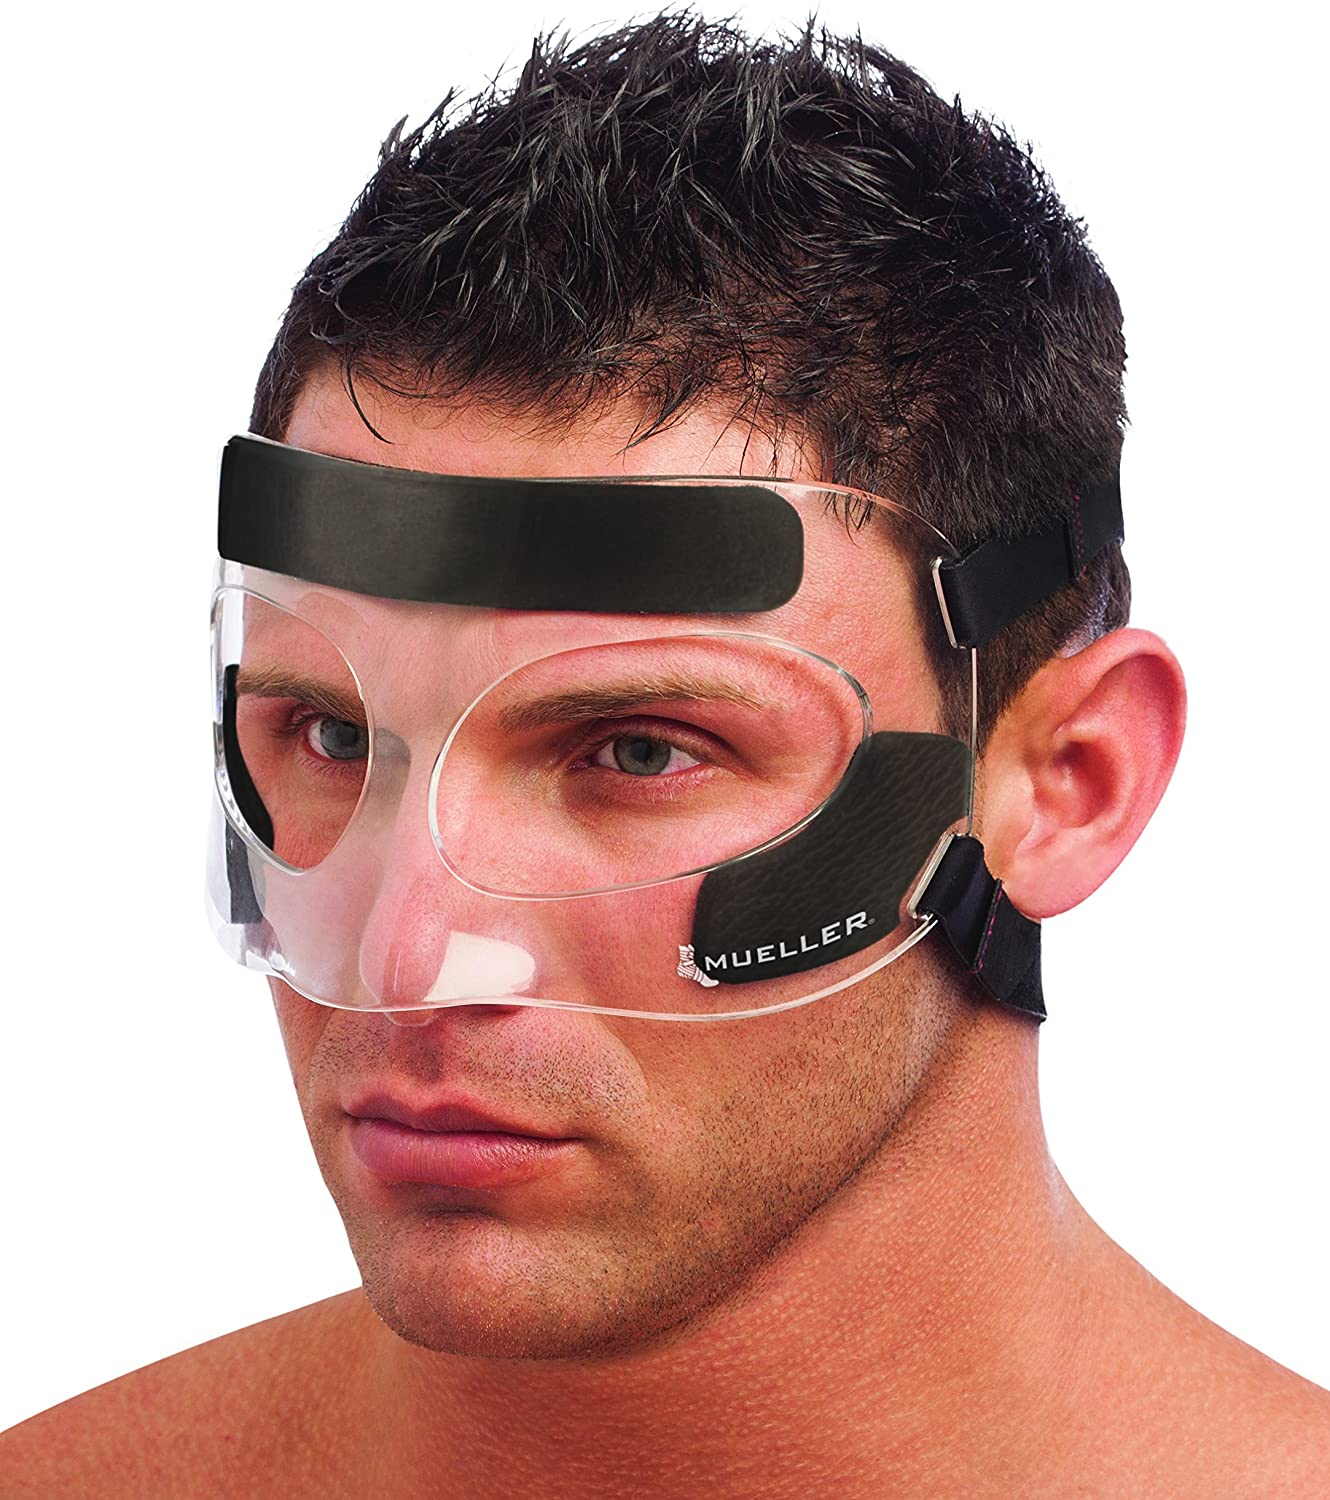 Mueller Face Guard | Protection from Impact injuries to Nose and Face, Clear, One Size Fits Most : Sports & Outdoors